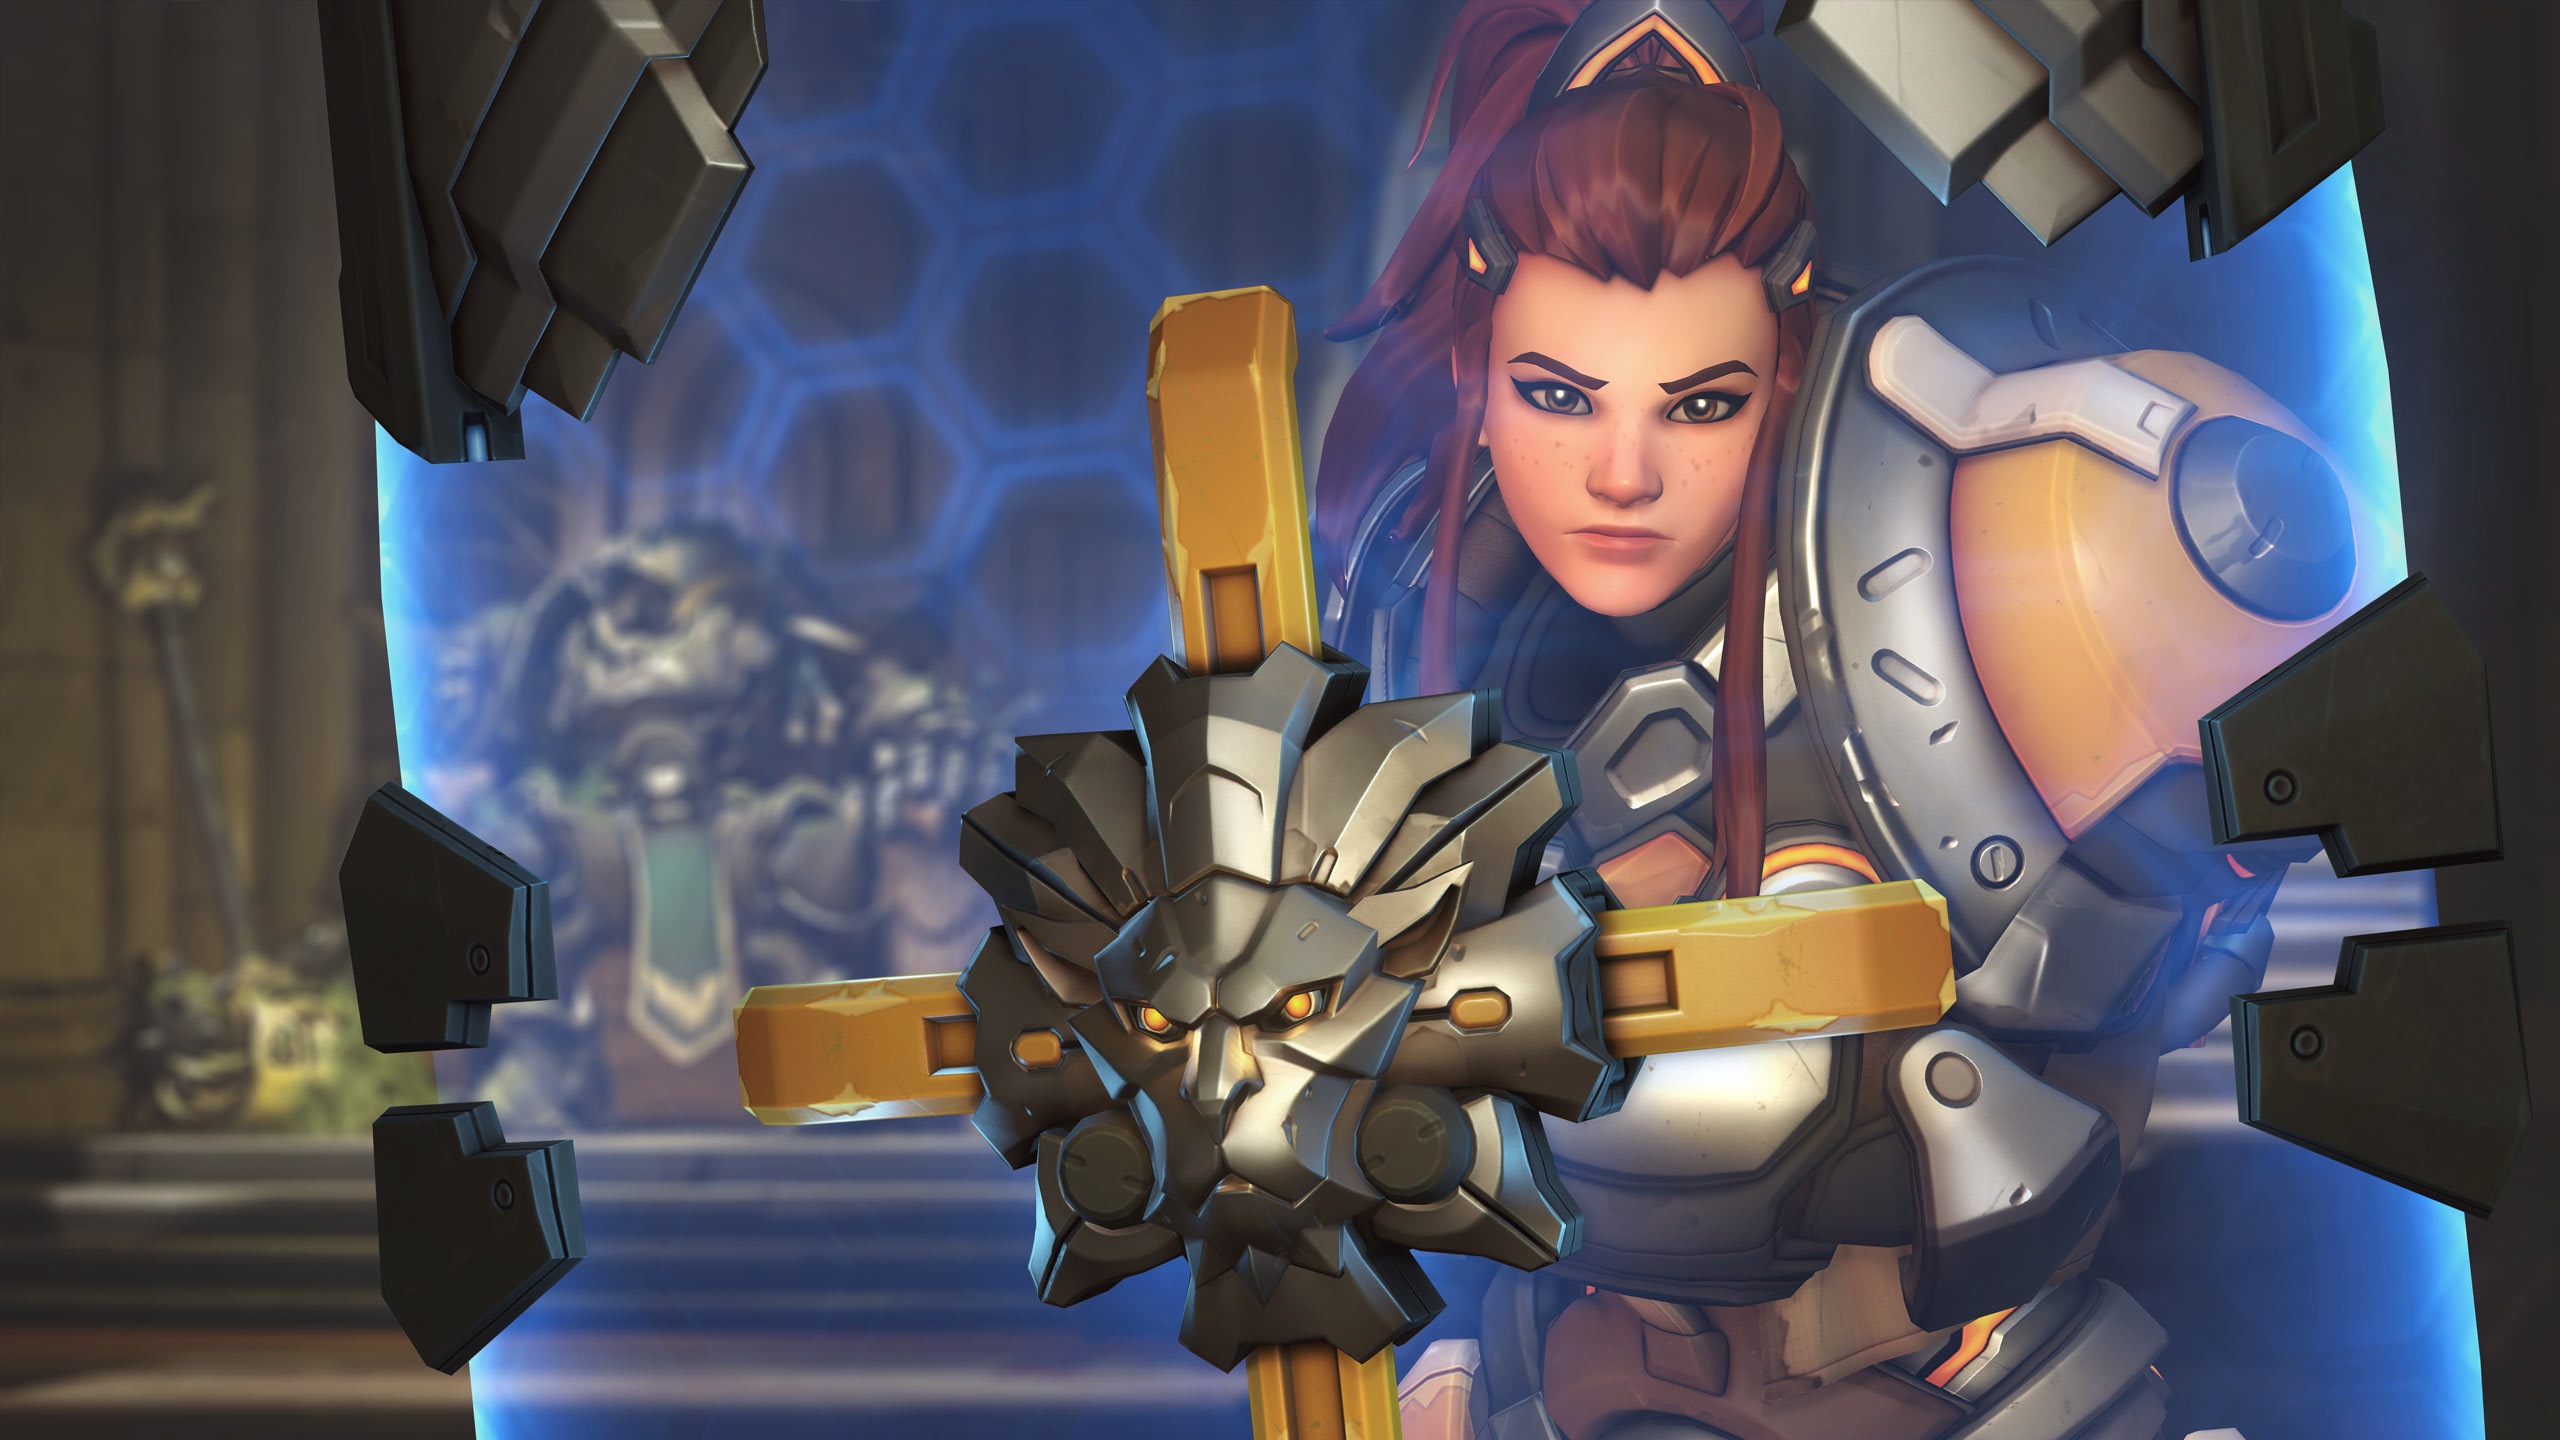 Diablo and Overwatch Marketing Exec Joins Square Enix